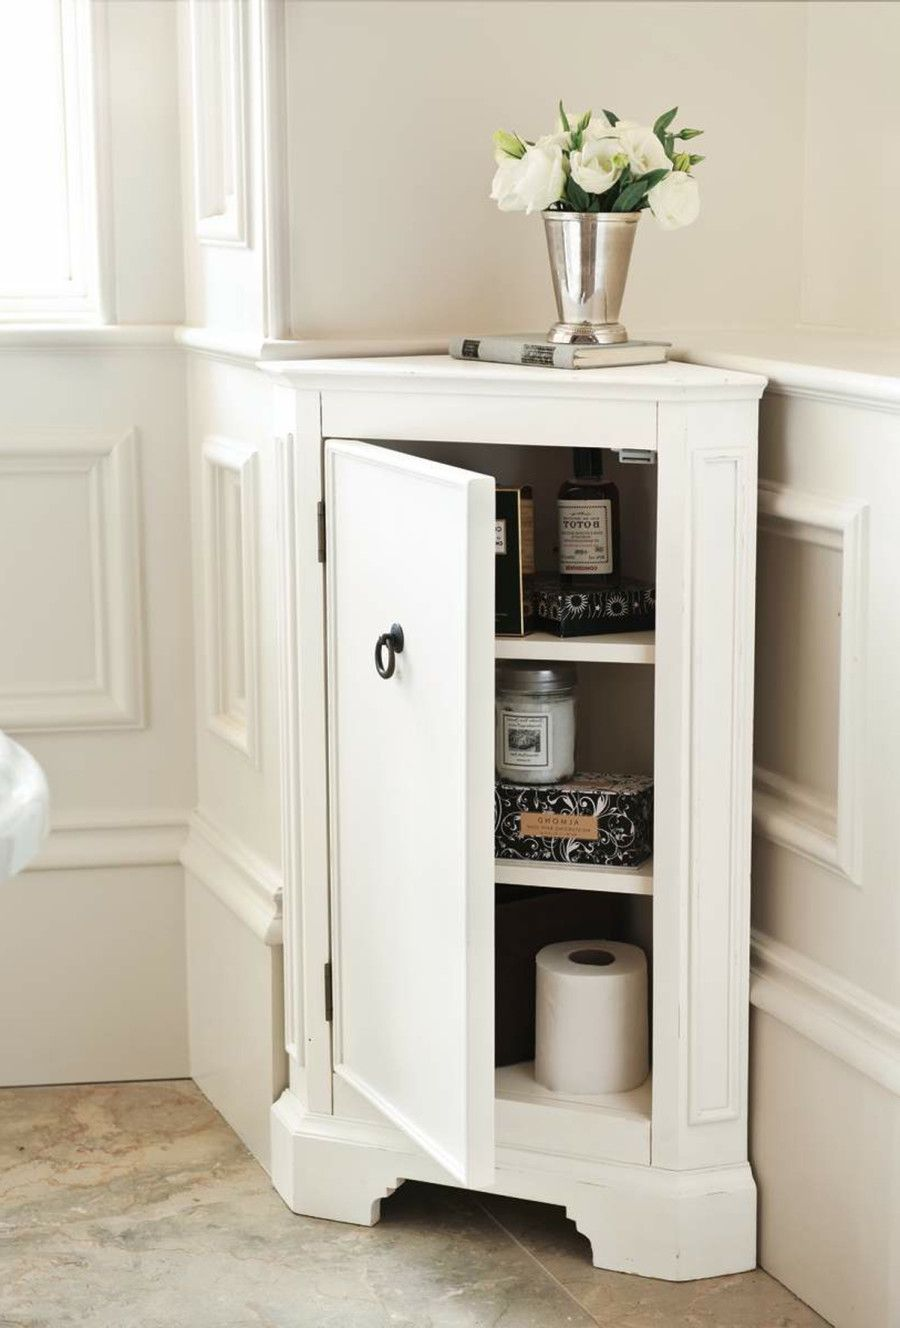 Storage ideas for small bathrooms with no cabinets flower vase ...